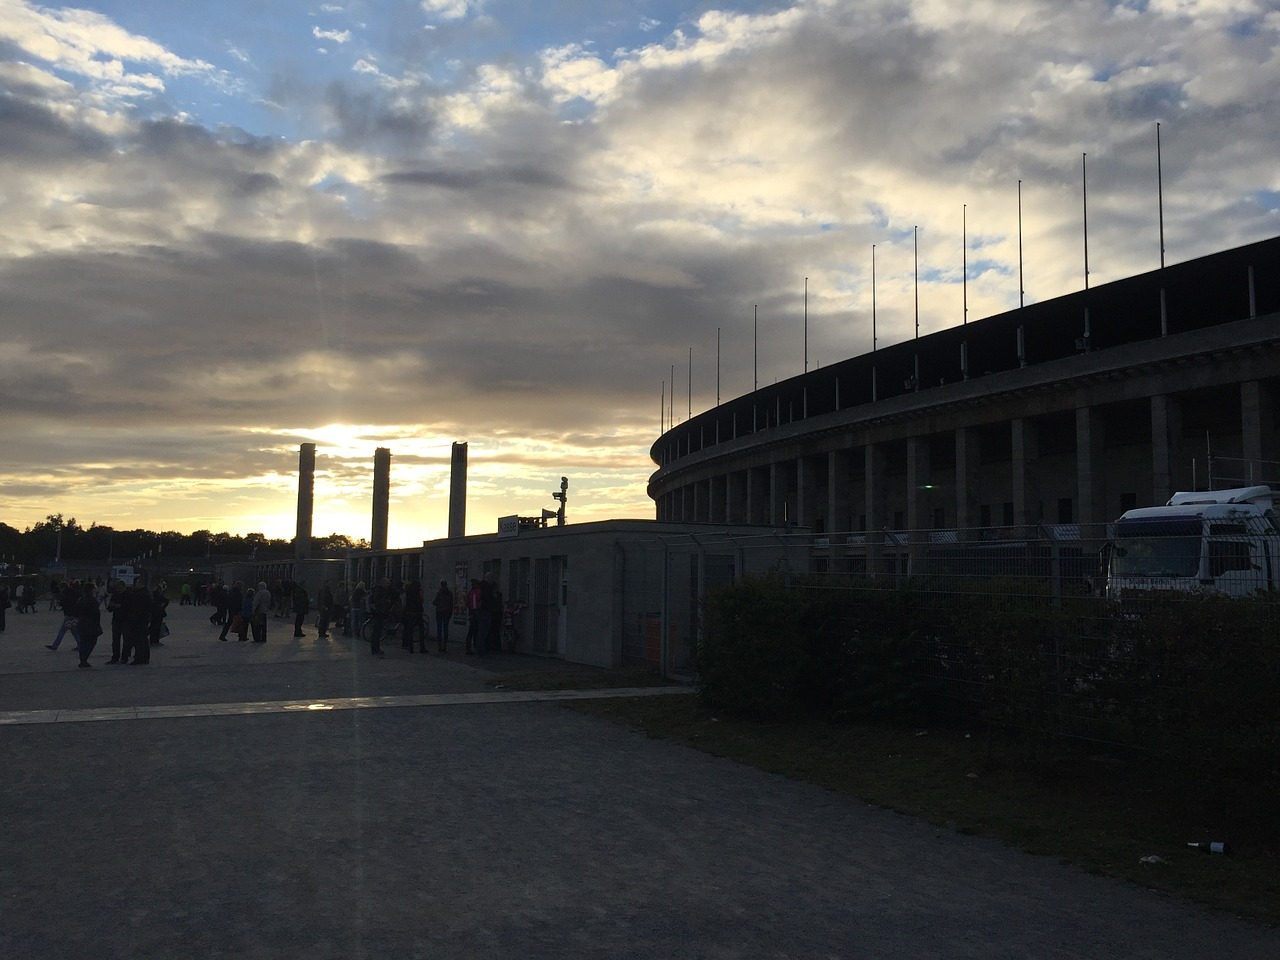 berlin olympiastadion architecture free photo